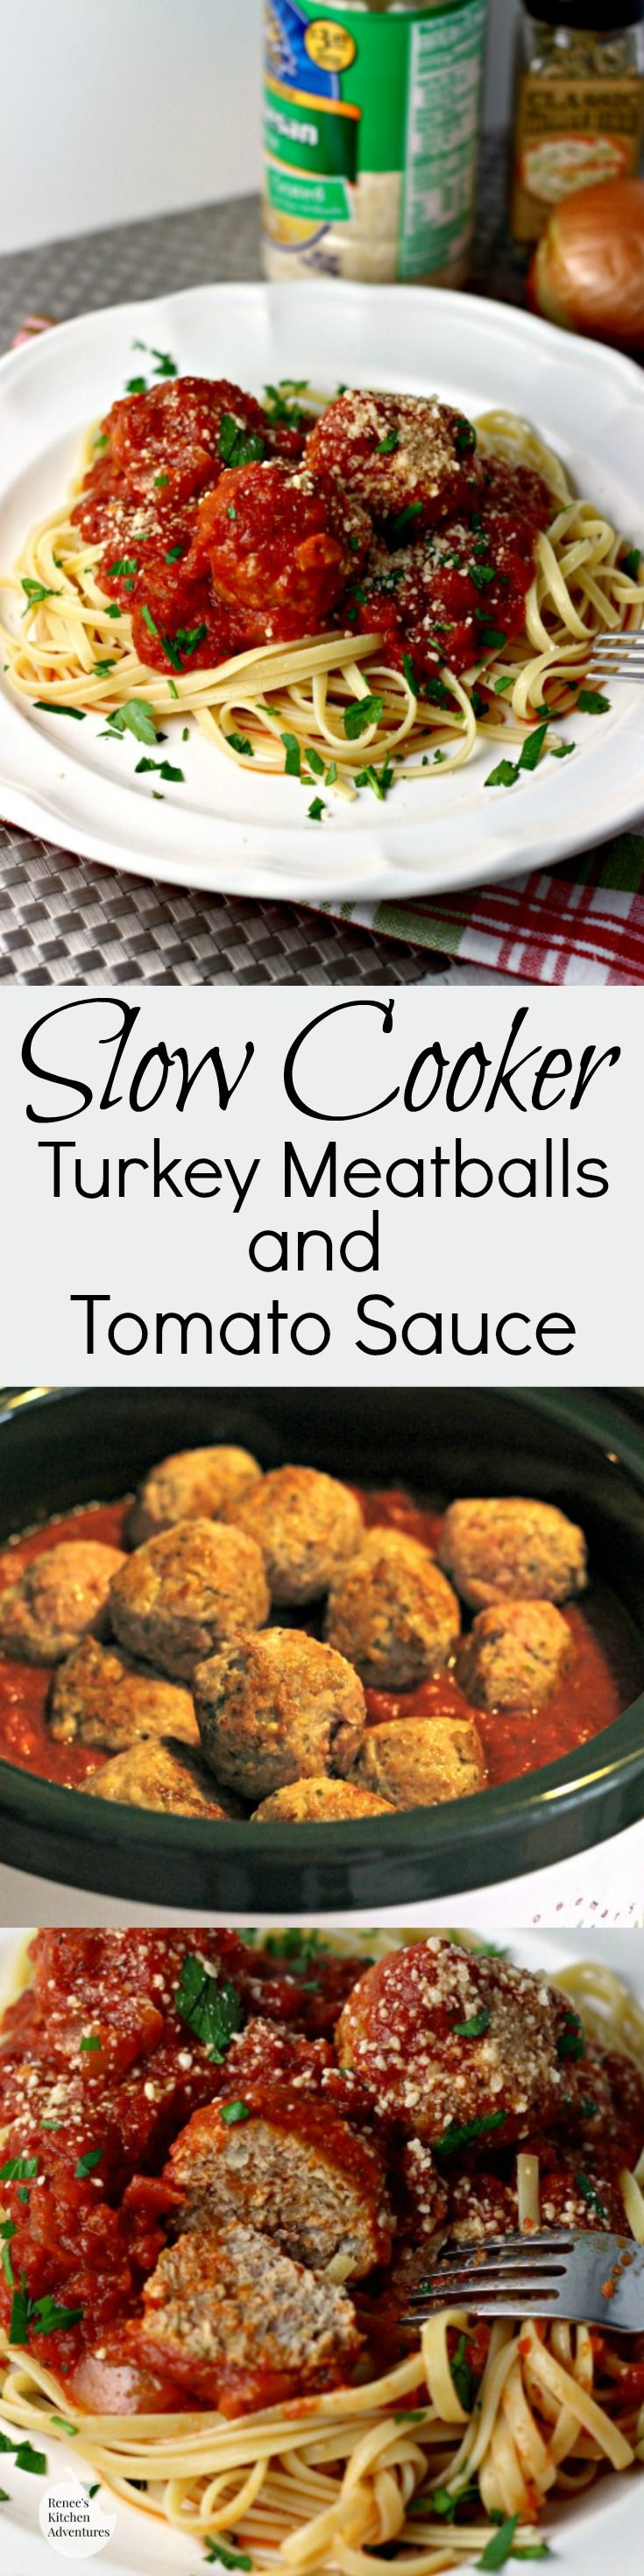 Slow Cooker Turkey Meatballs and Tomato Sauce | Renee's Kitchen Adventures - Classic meatballs and sauce simmer all day for an Italian feast.  Healthy, easy, recipe.